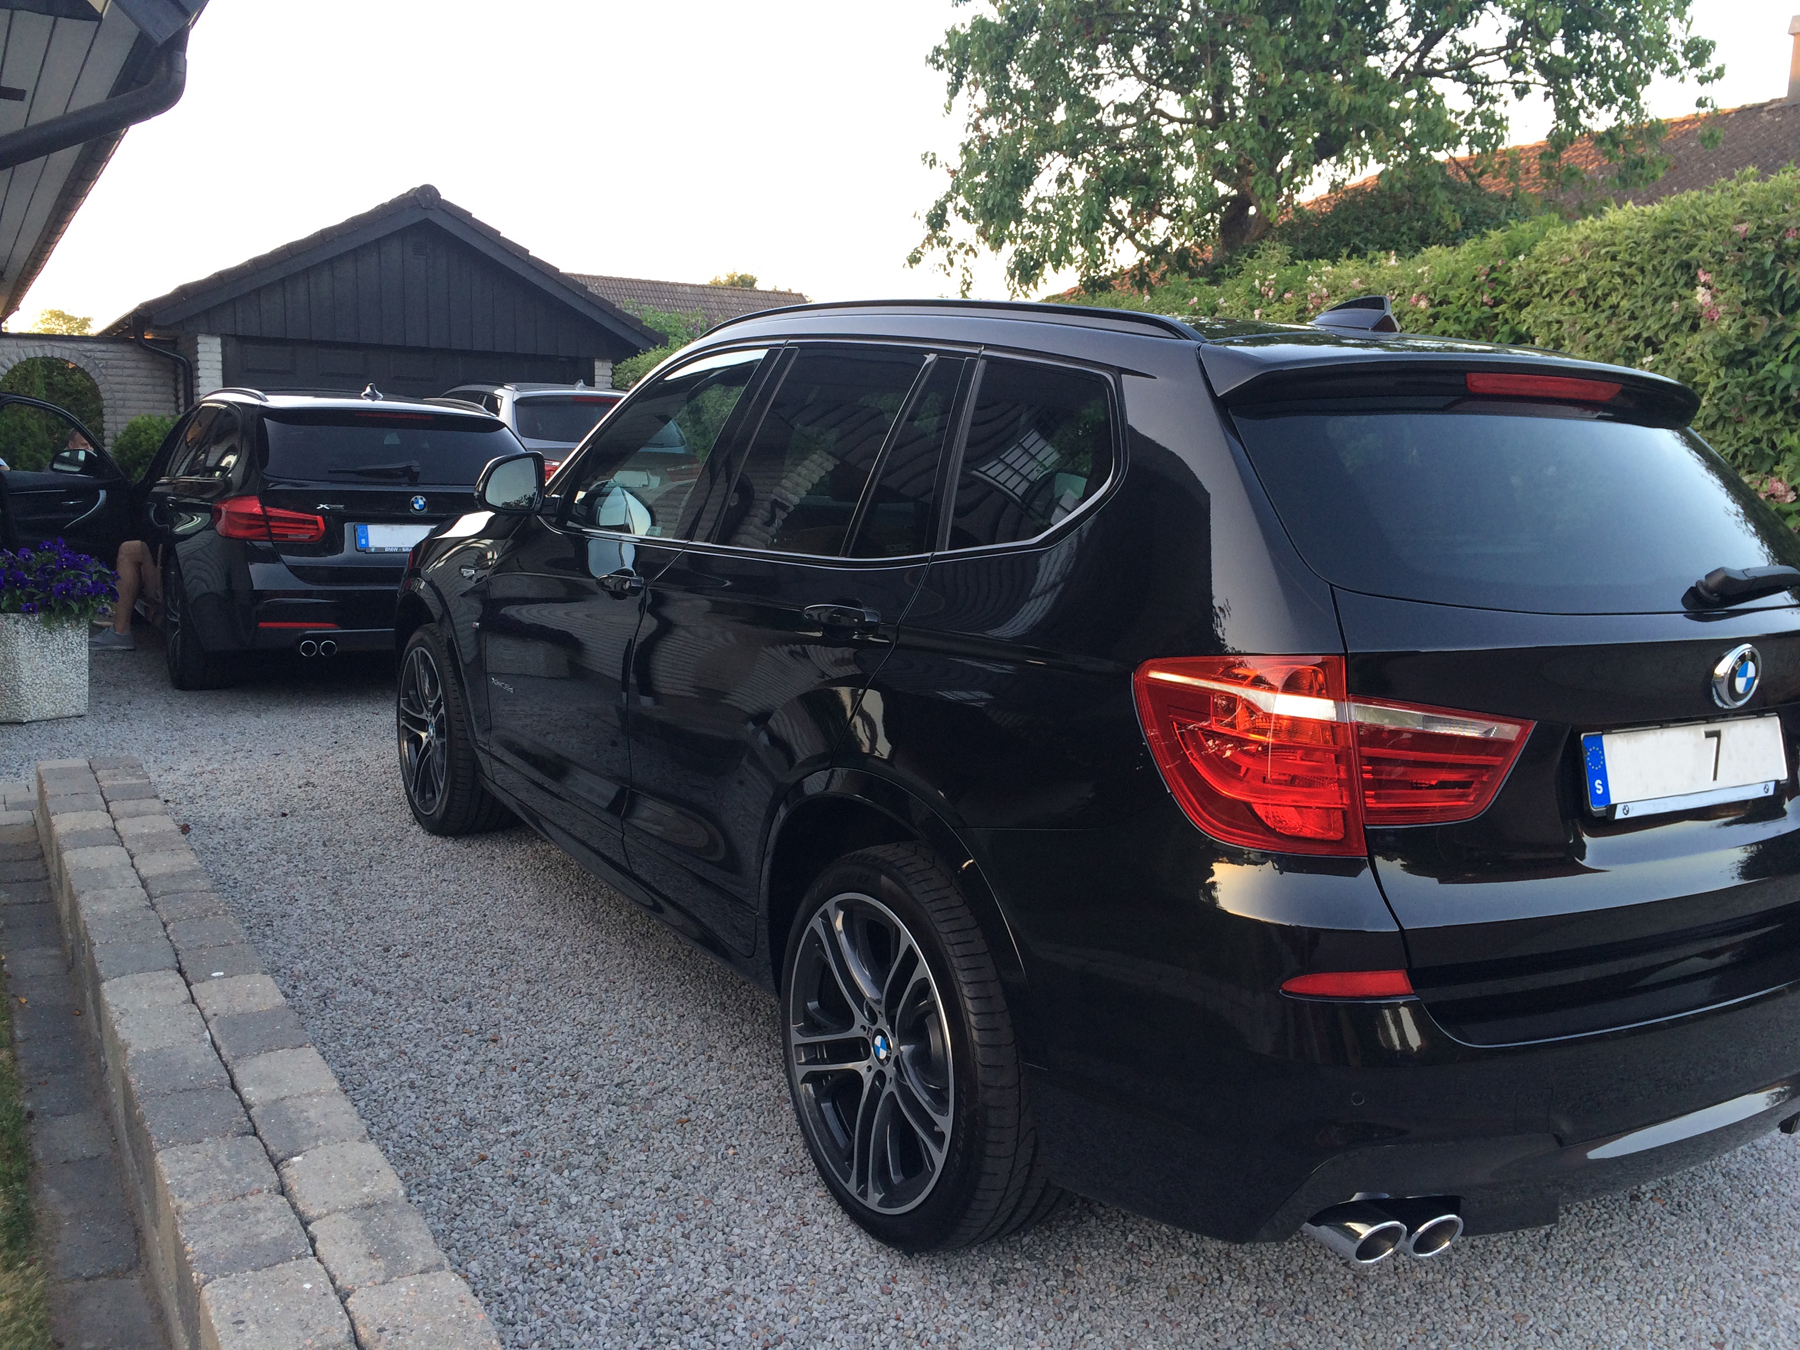 xbimmers bmw x3 forum view single post bmw x3 f25 april 2016 update. Black Bedroom Furniture Sets. Home Design Ideas